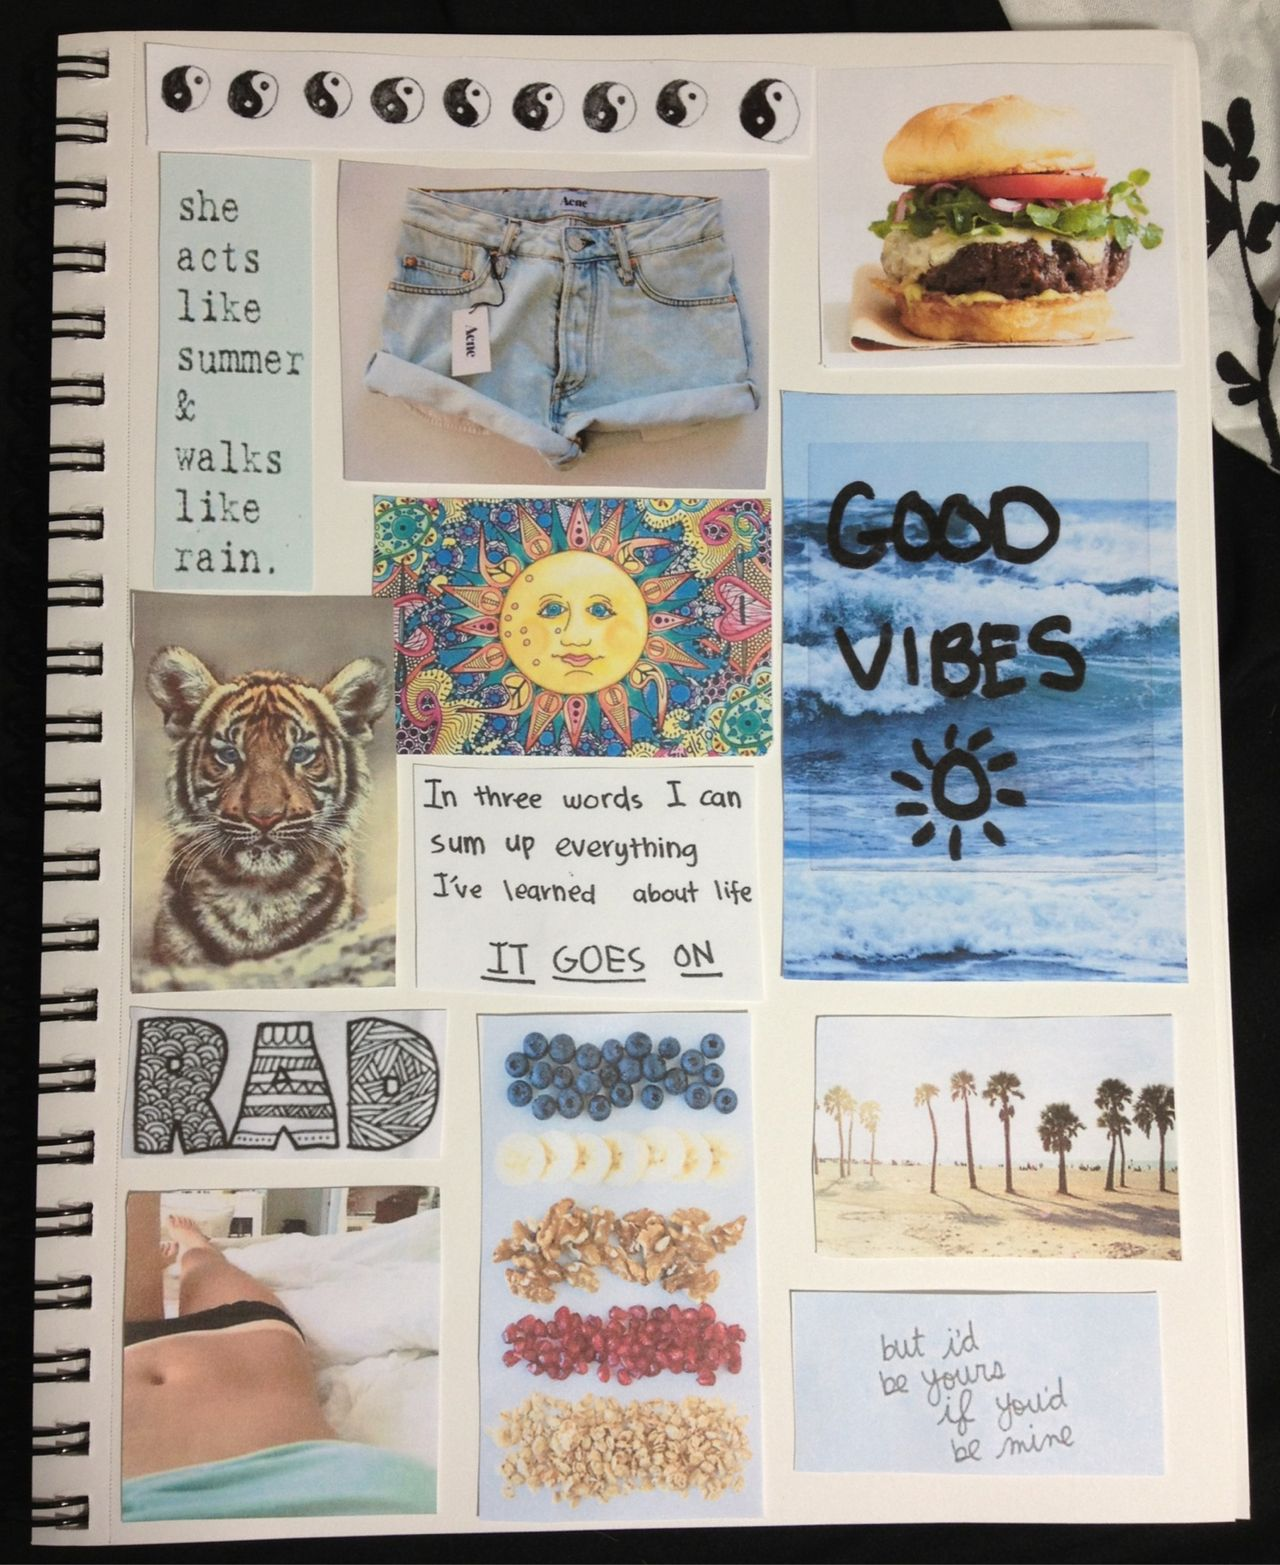 How to make scrapbook look good - Good Vibes Not Scrapbook When You Re In A Good Mood Fill A